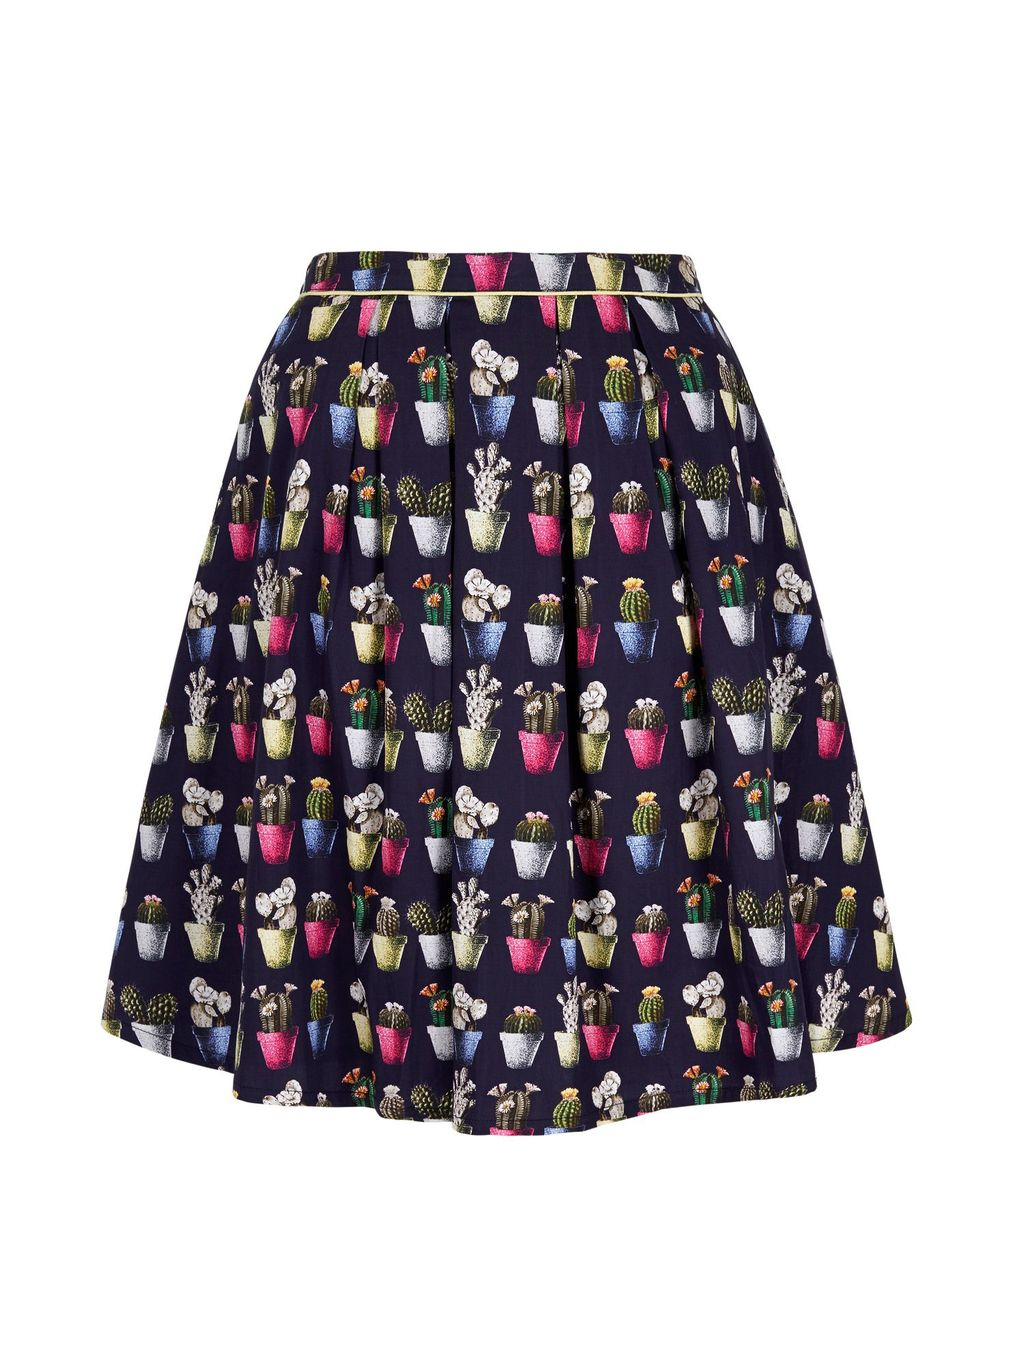 Cactus Print Skater Skirt, Navy - length: mid thigh; fit: loose/voluminous; style: pleated; waist: high rise; secondary colour: hot pink; predominant colour: navy; fibres: polyester/polyamide - 100%; waist detail: feature waist detail; pattern type: fabric; pattern: patterned/print; texture group: woven light midweight; occasions: creative work; pattern size: standard (bottom); multicoloured: multicoloured; season: s/s 2016; wardrobe: highlight